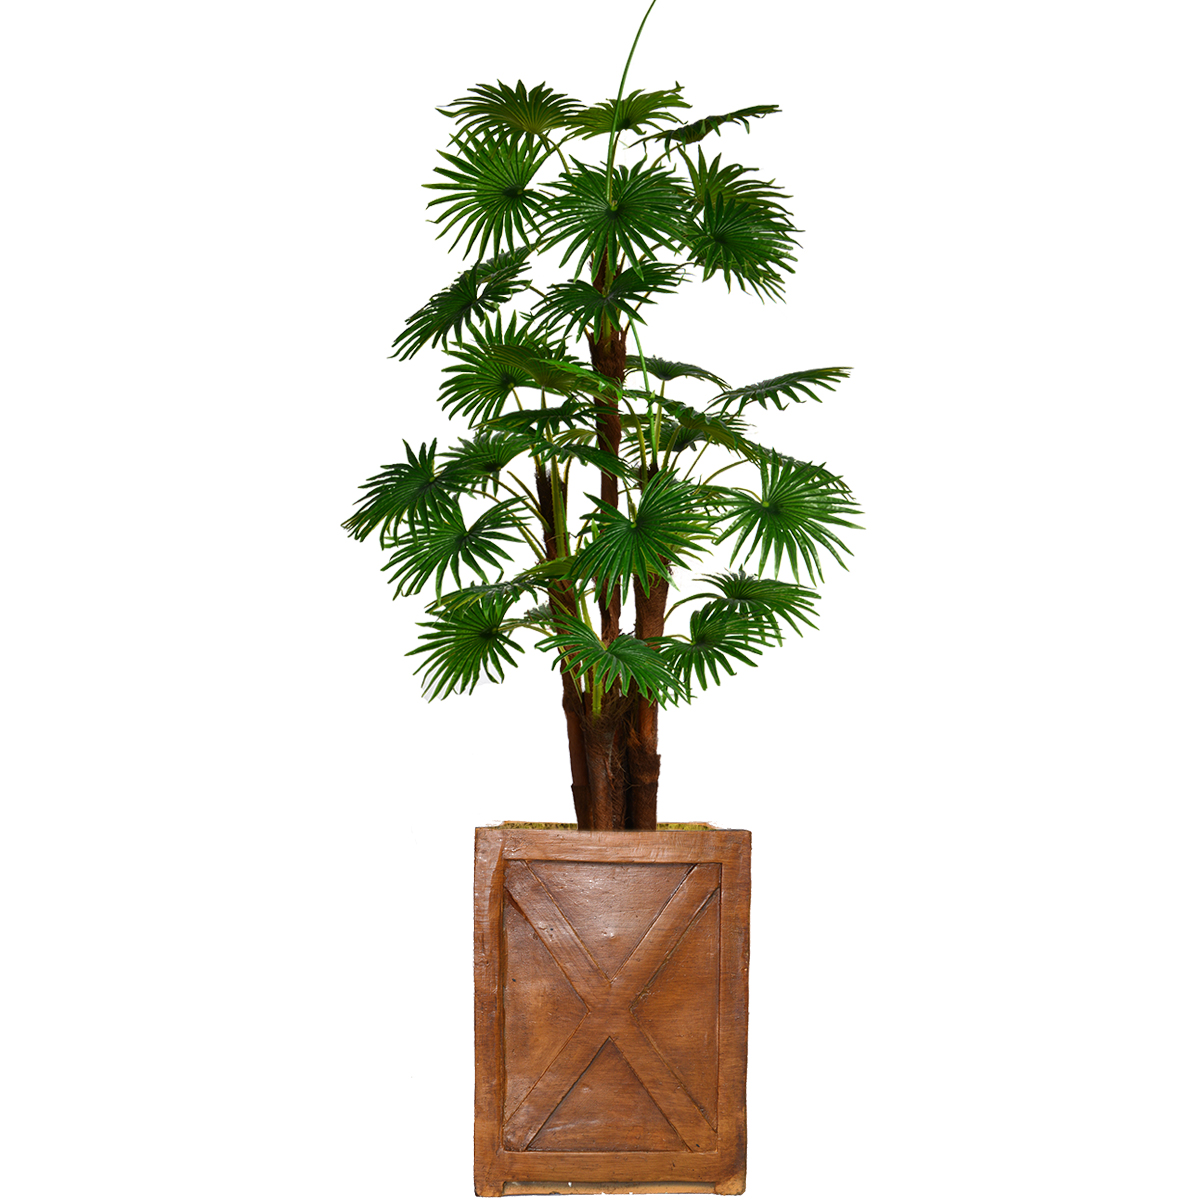 """75"""" Tall Fan Palm Tree Artificial Indoor/ Outdoor Décor Faux Burlap Kit and Fiberstone Planter By Minx NY"""